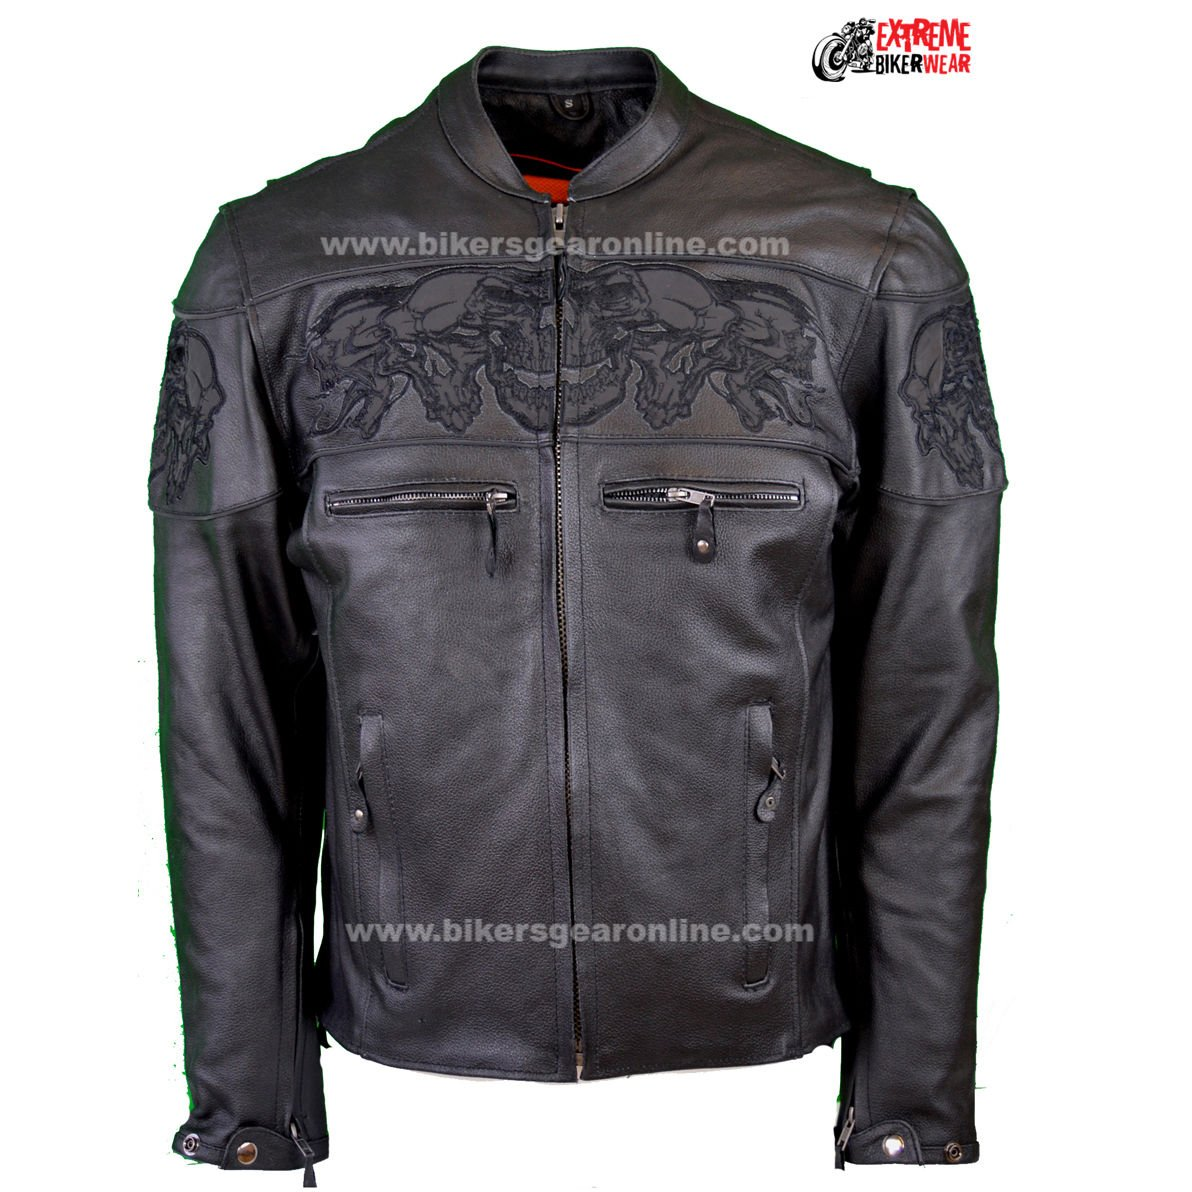 Dream Men's Motorcycle Riding Blk Reflective Skull Leather Jacket Big Sizes Upto 10xl (6XL Regular) by Dream (Image #2)